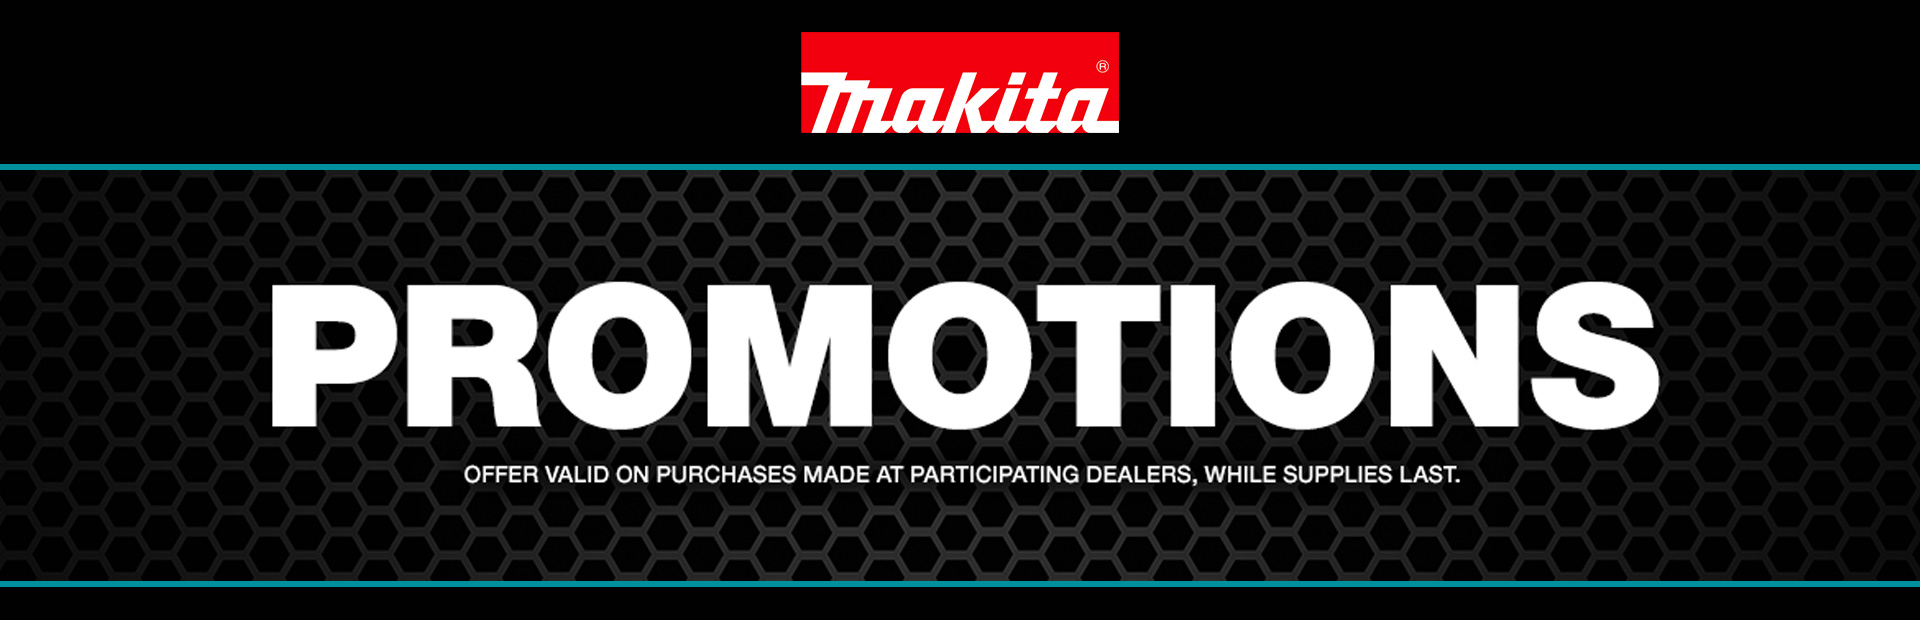 Makita: Makita Promotions